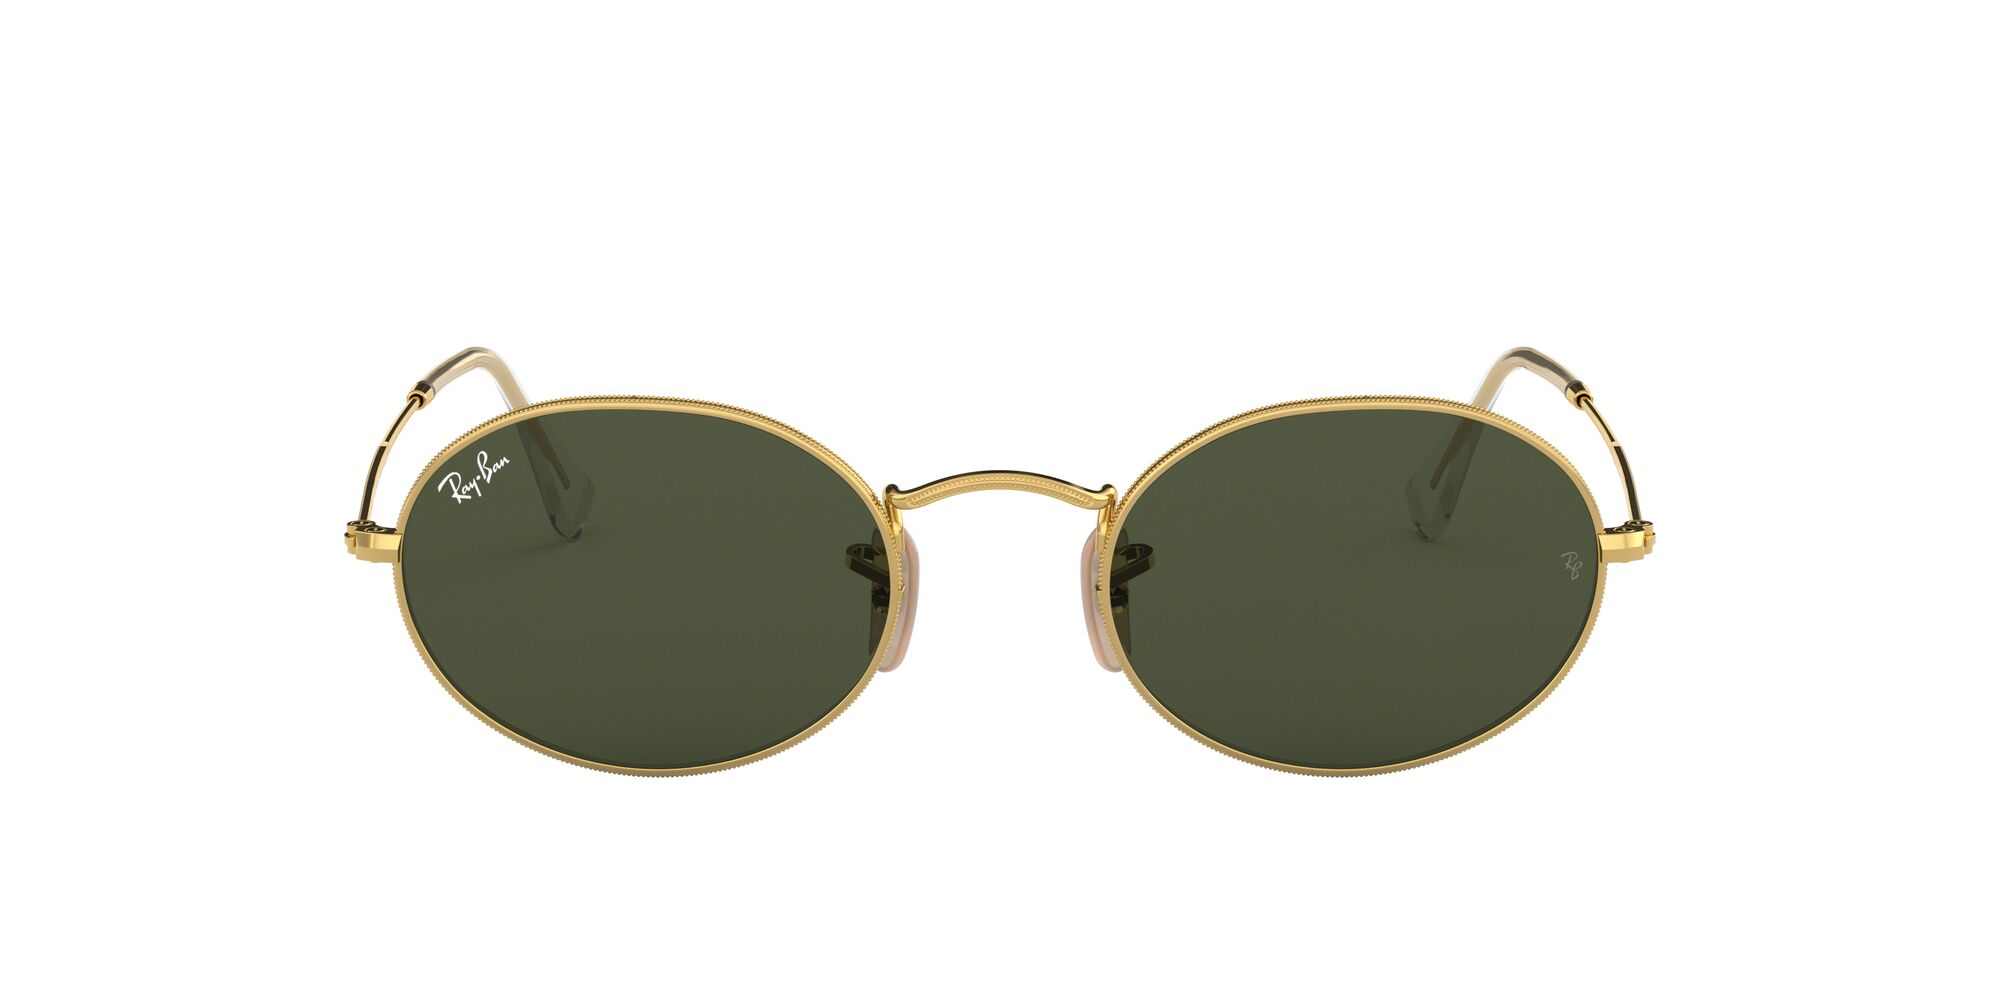 Front Ray-Ban Ray-Ban 0RB3547 001/31 54/21 Goud/Groen